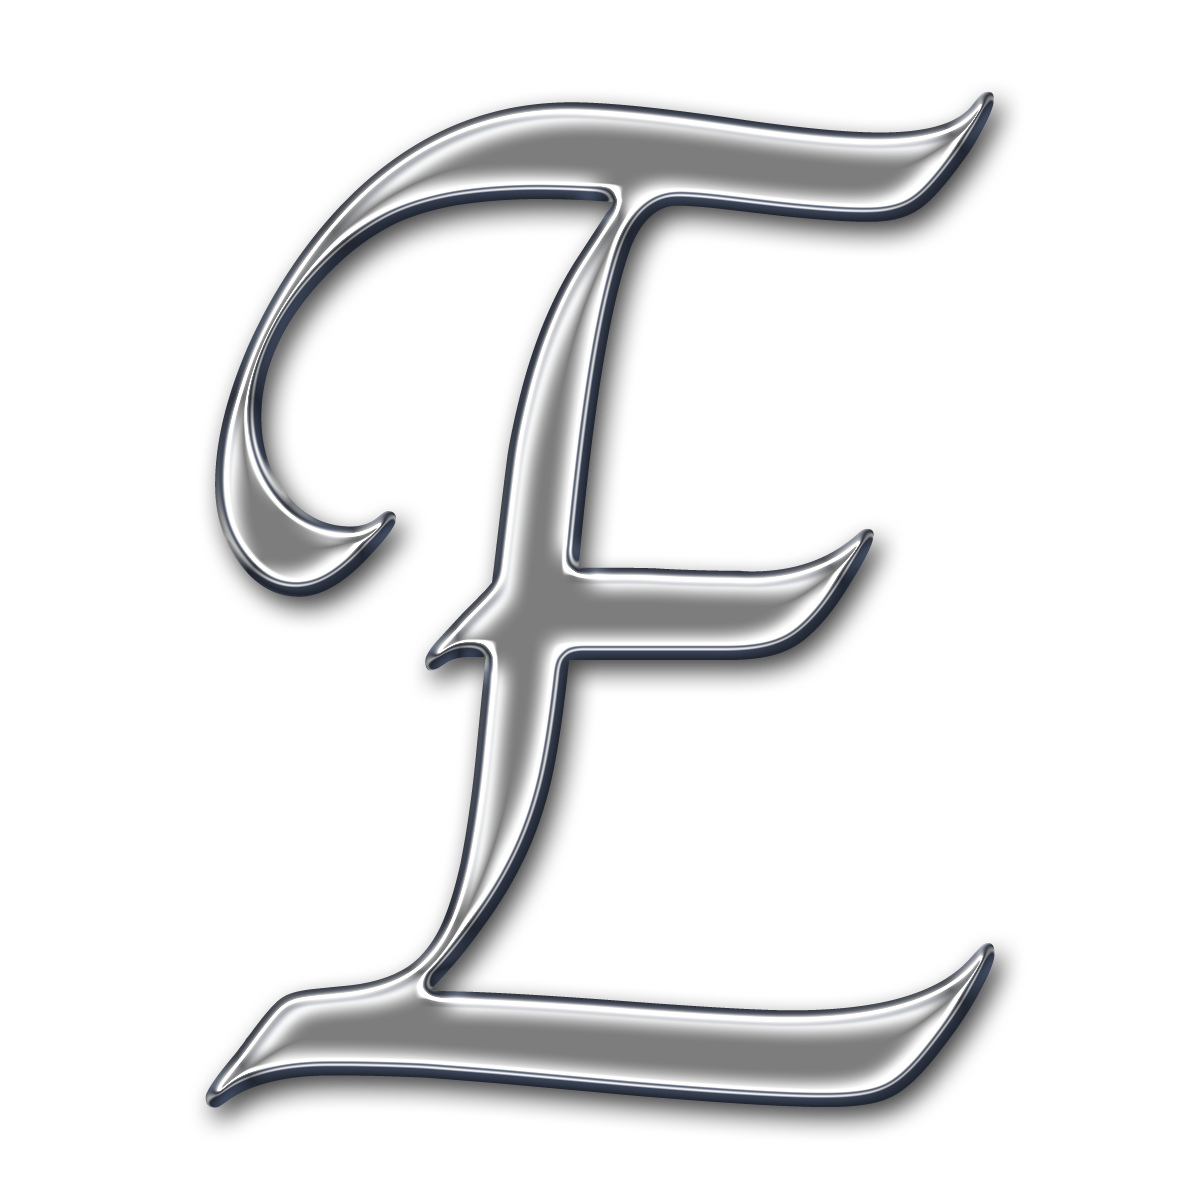 CAPITAL-LETTER-E-FREE-ALPHA.png (1200×1200)